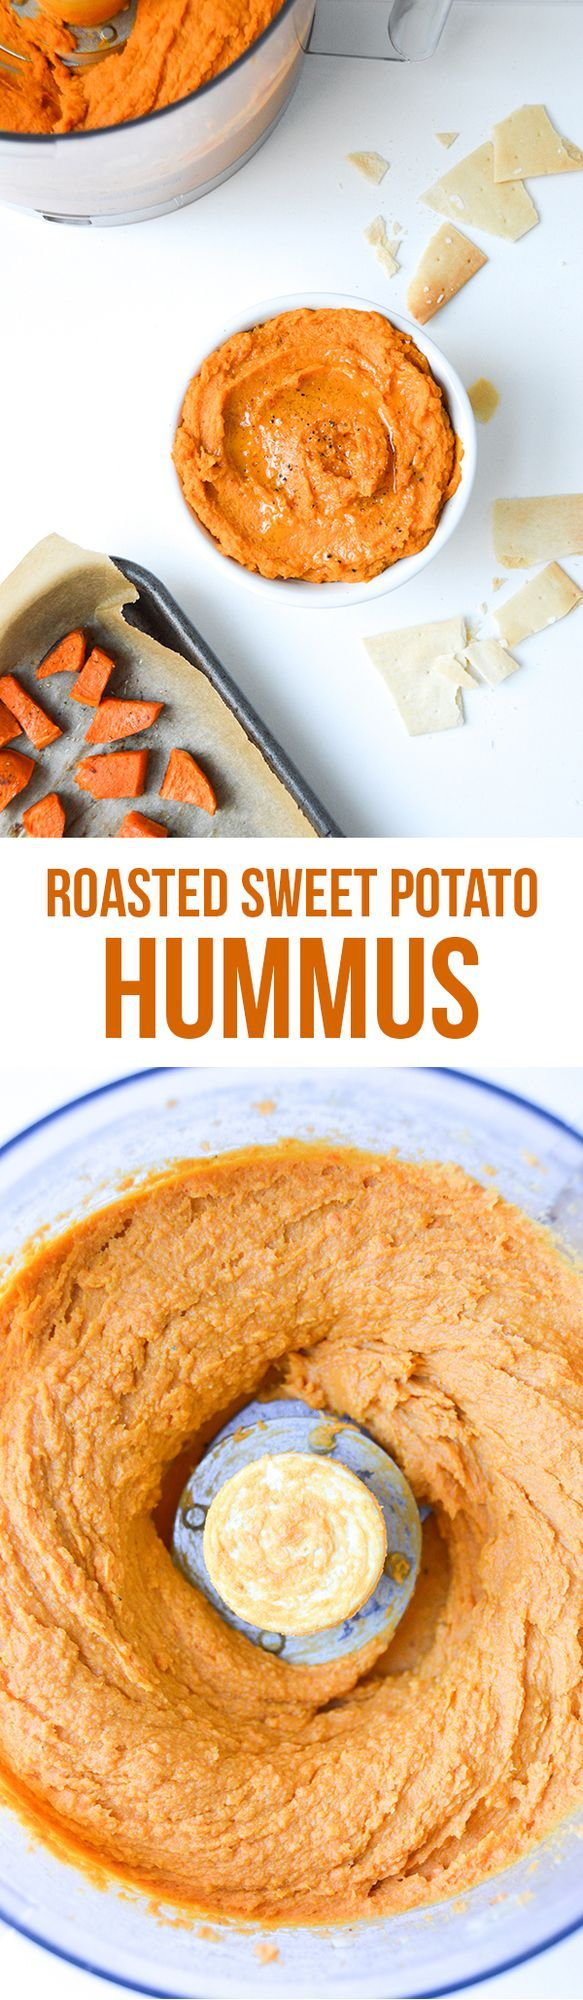 This roasted sweet potato hummus recipe was originally posted to the blog in 2013, but was deserving of new photography so I'm re-publishing it today with new text and pictures. I eat it with pita chi